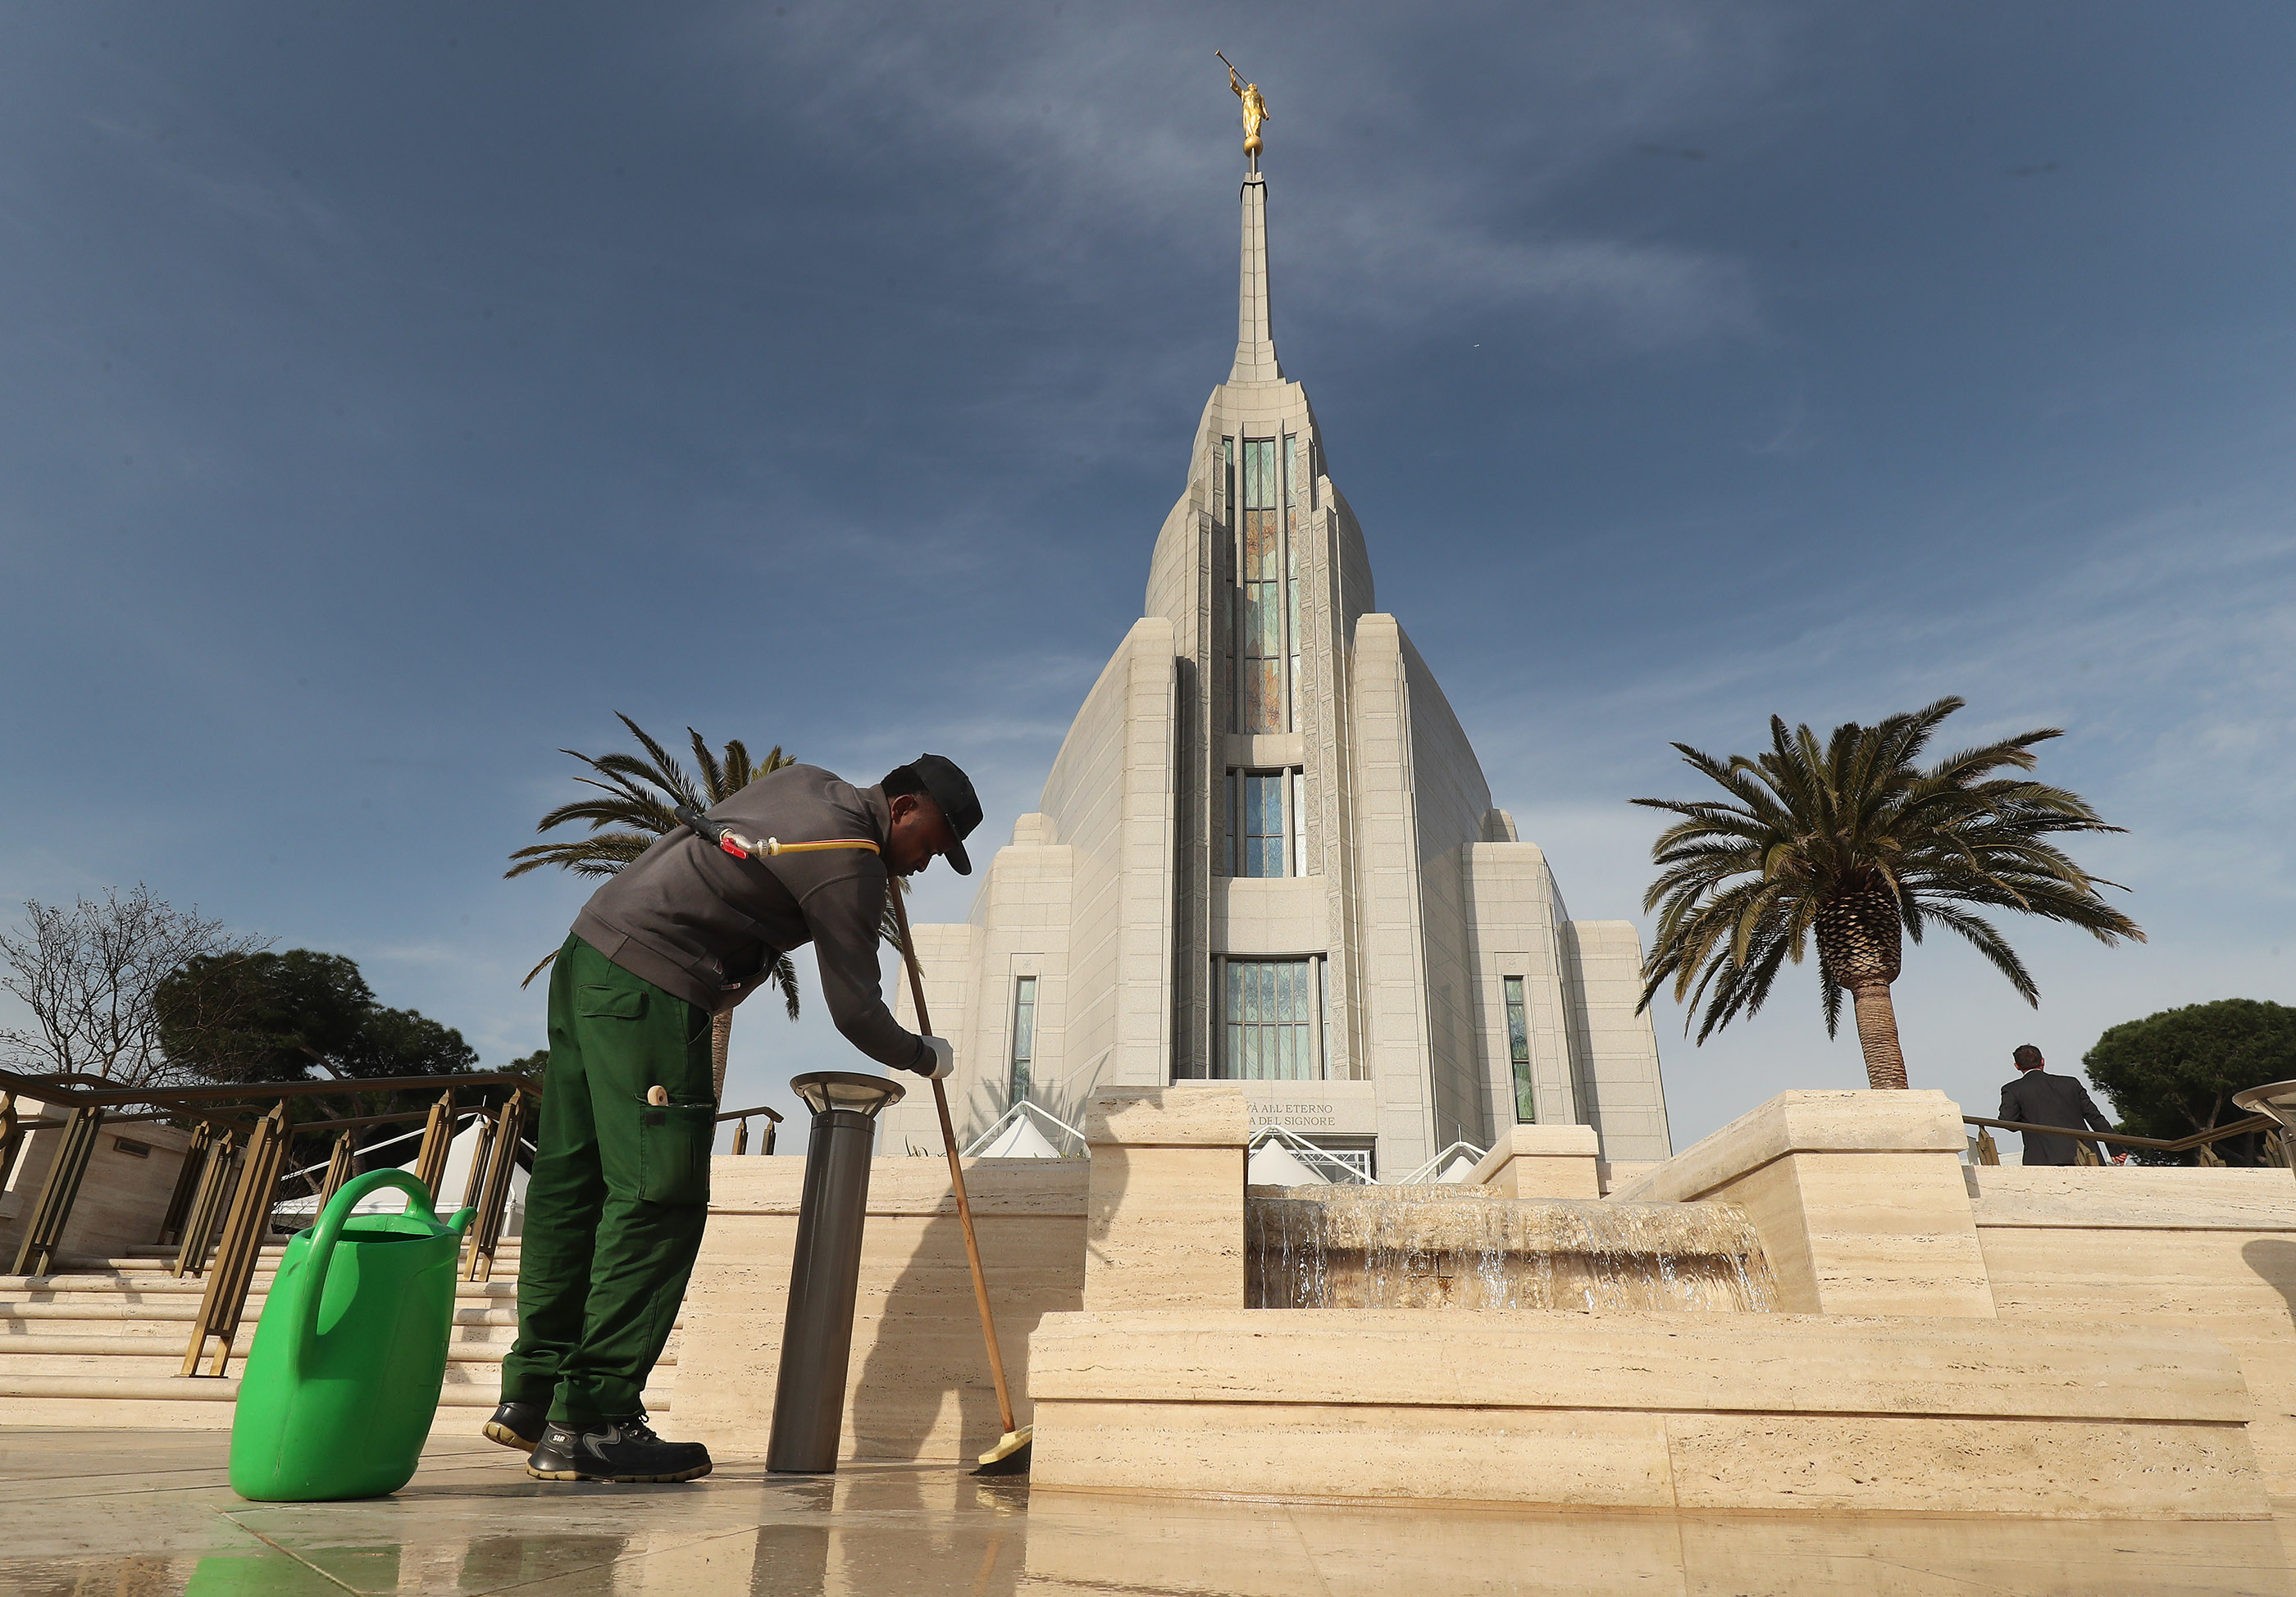 Rhenald Idubor cleans the fountain at the Rome Italy Temple of The Church of Jesus Christ of Latter-day Saints on Friday, March 8, 2019 in preparation for the temple's upcoming dedication